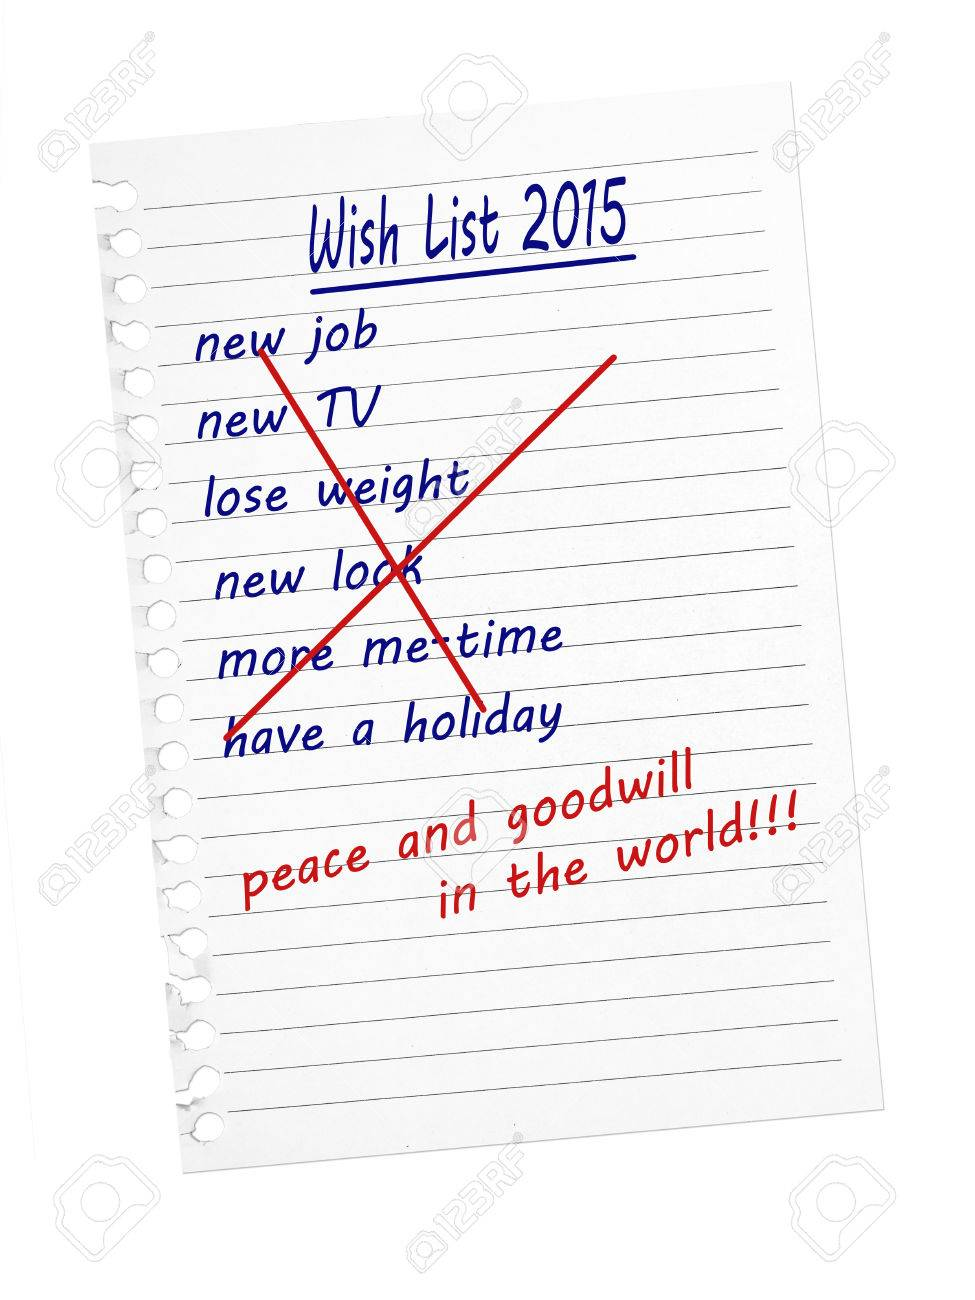 4976f7d29a1 Wish list for Christmas, New Year. Peace and Goodwill. Stock Photo -  31795850